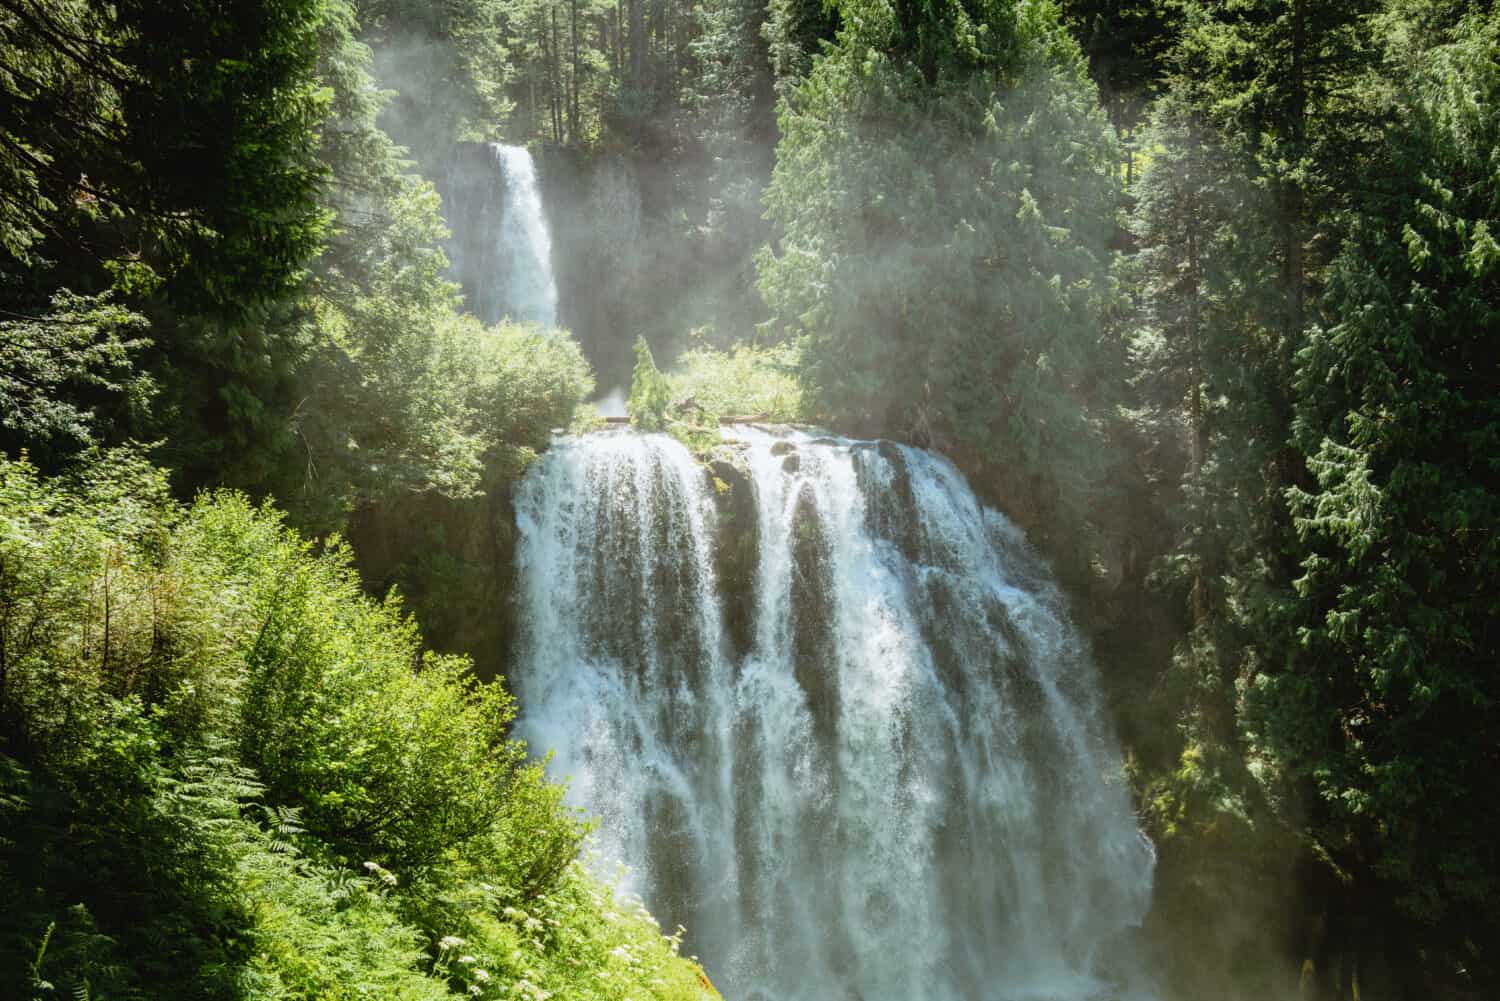 View of Marion Falls and Gatch Falls in Oregon